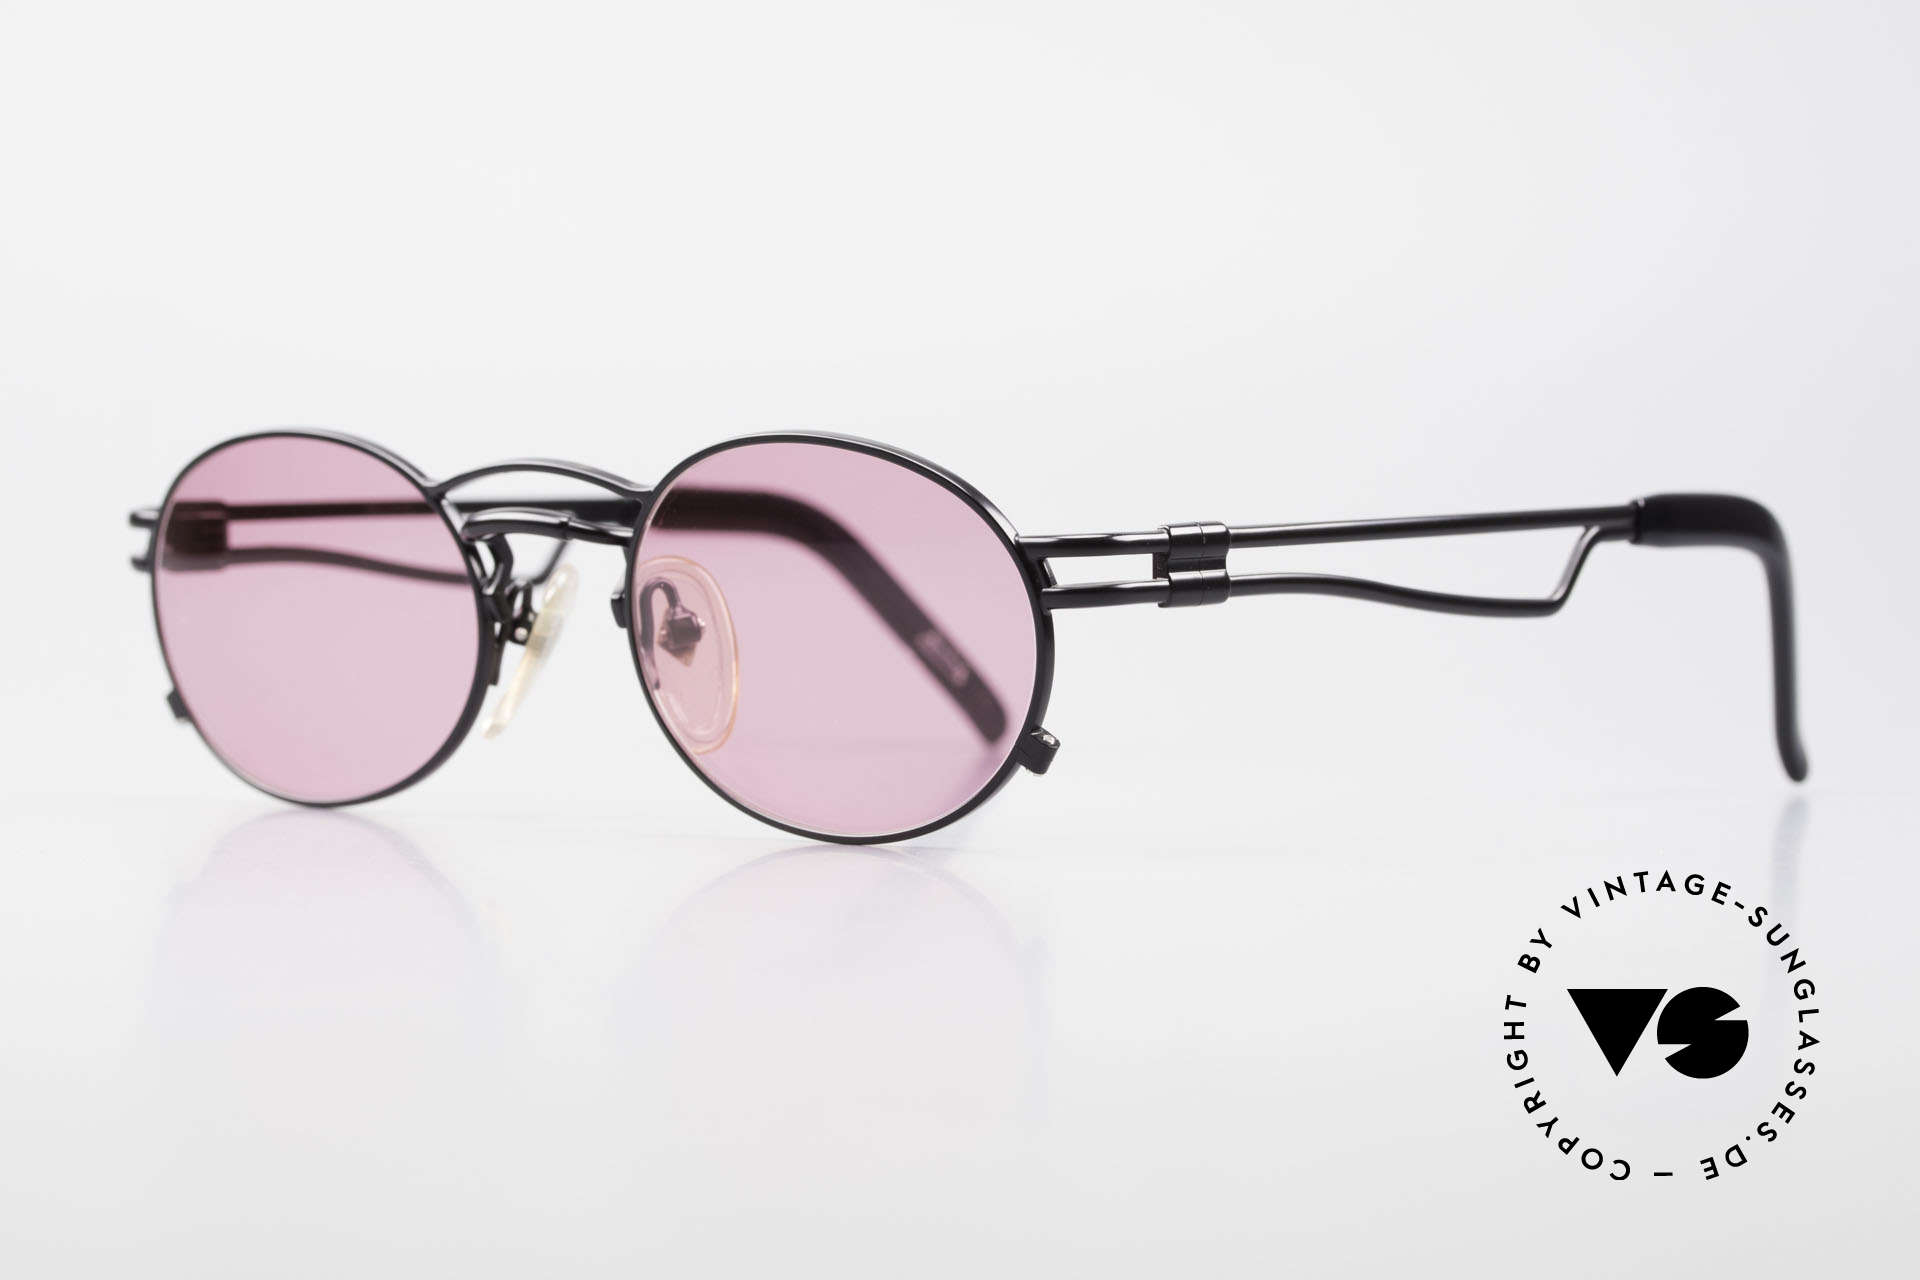 Jean Paul Gaultier 56-3173 Pink Oval Vintage Sunglasses, lightweight metal, ergonomic arms; made in Japan, Made for Men and Women